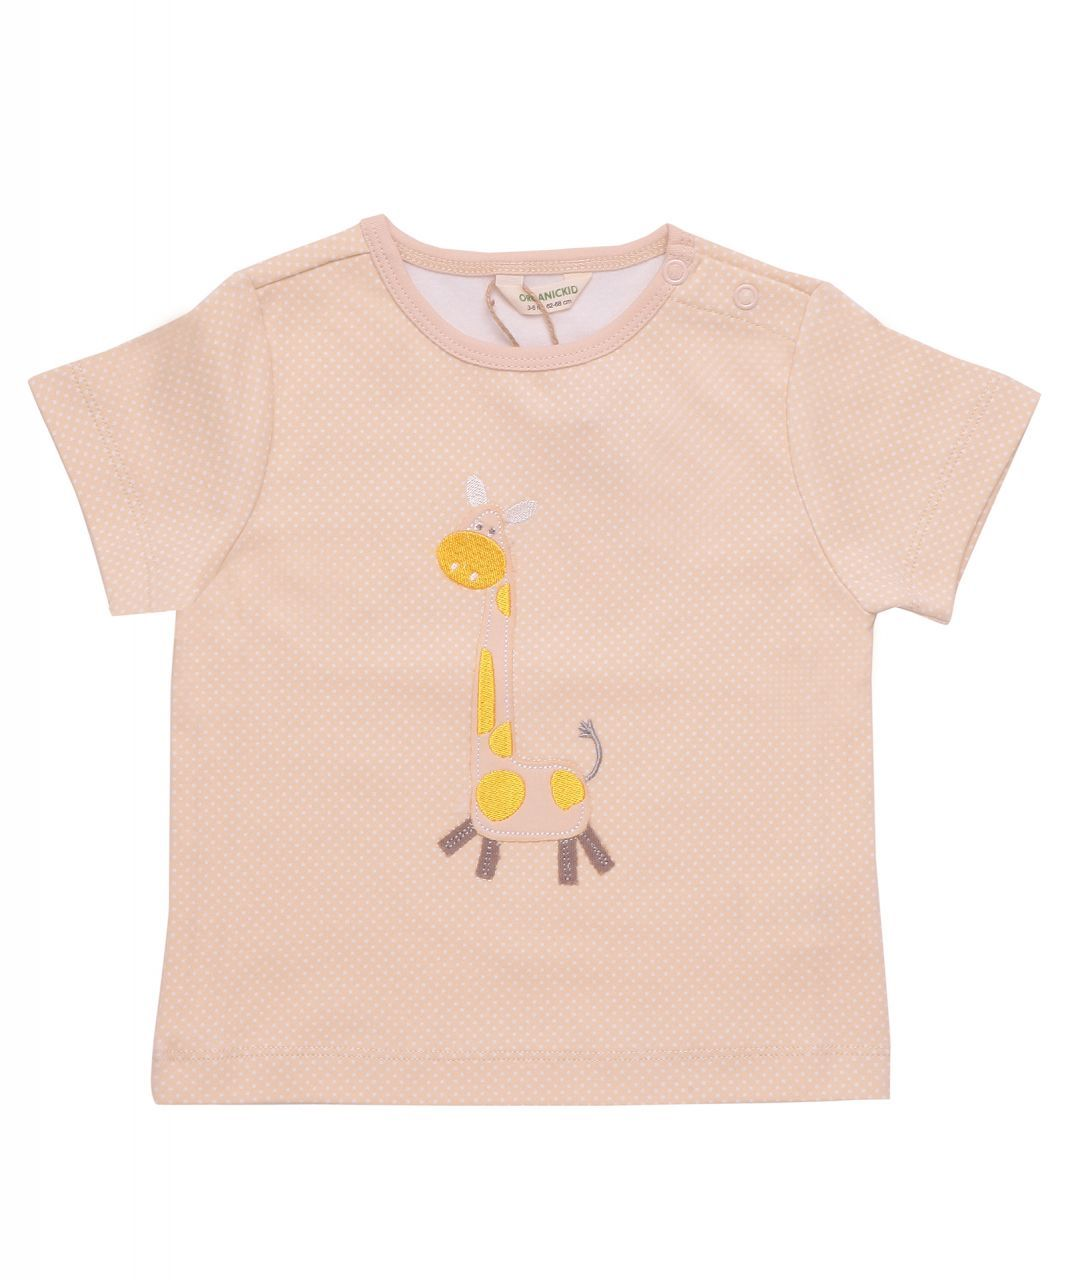 organic baby clothes manufacturers turkey